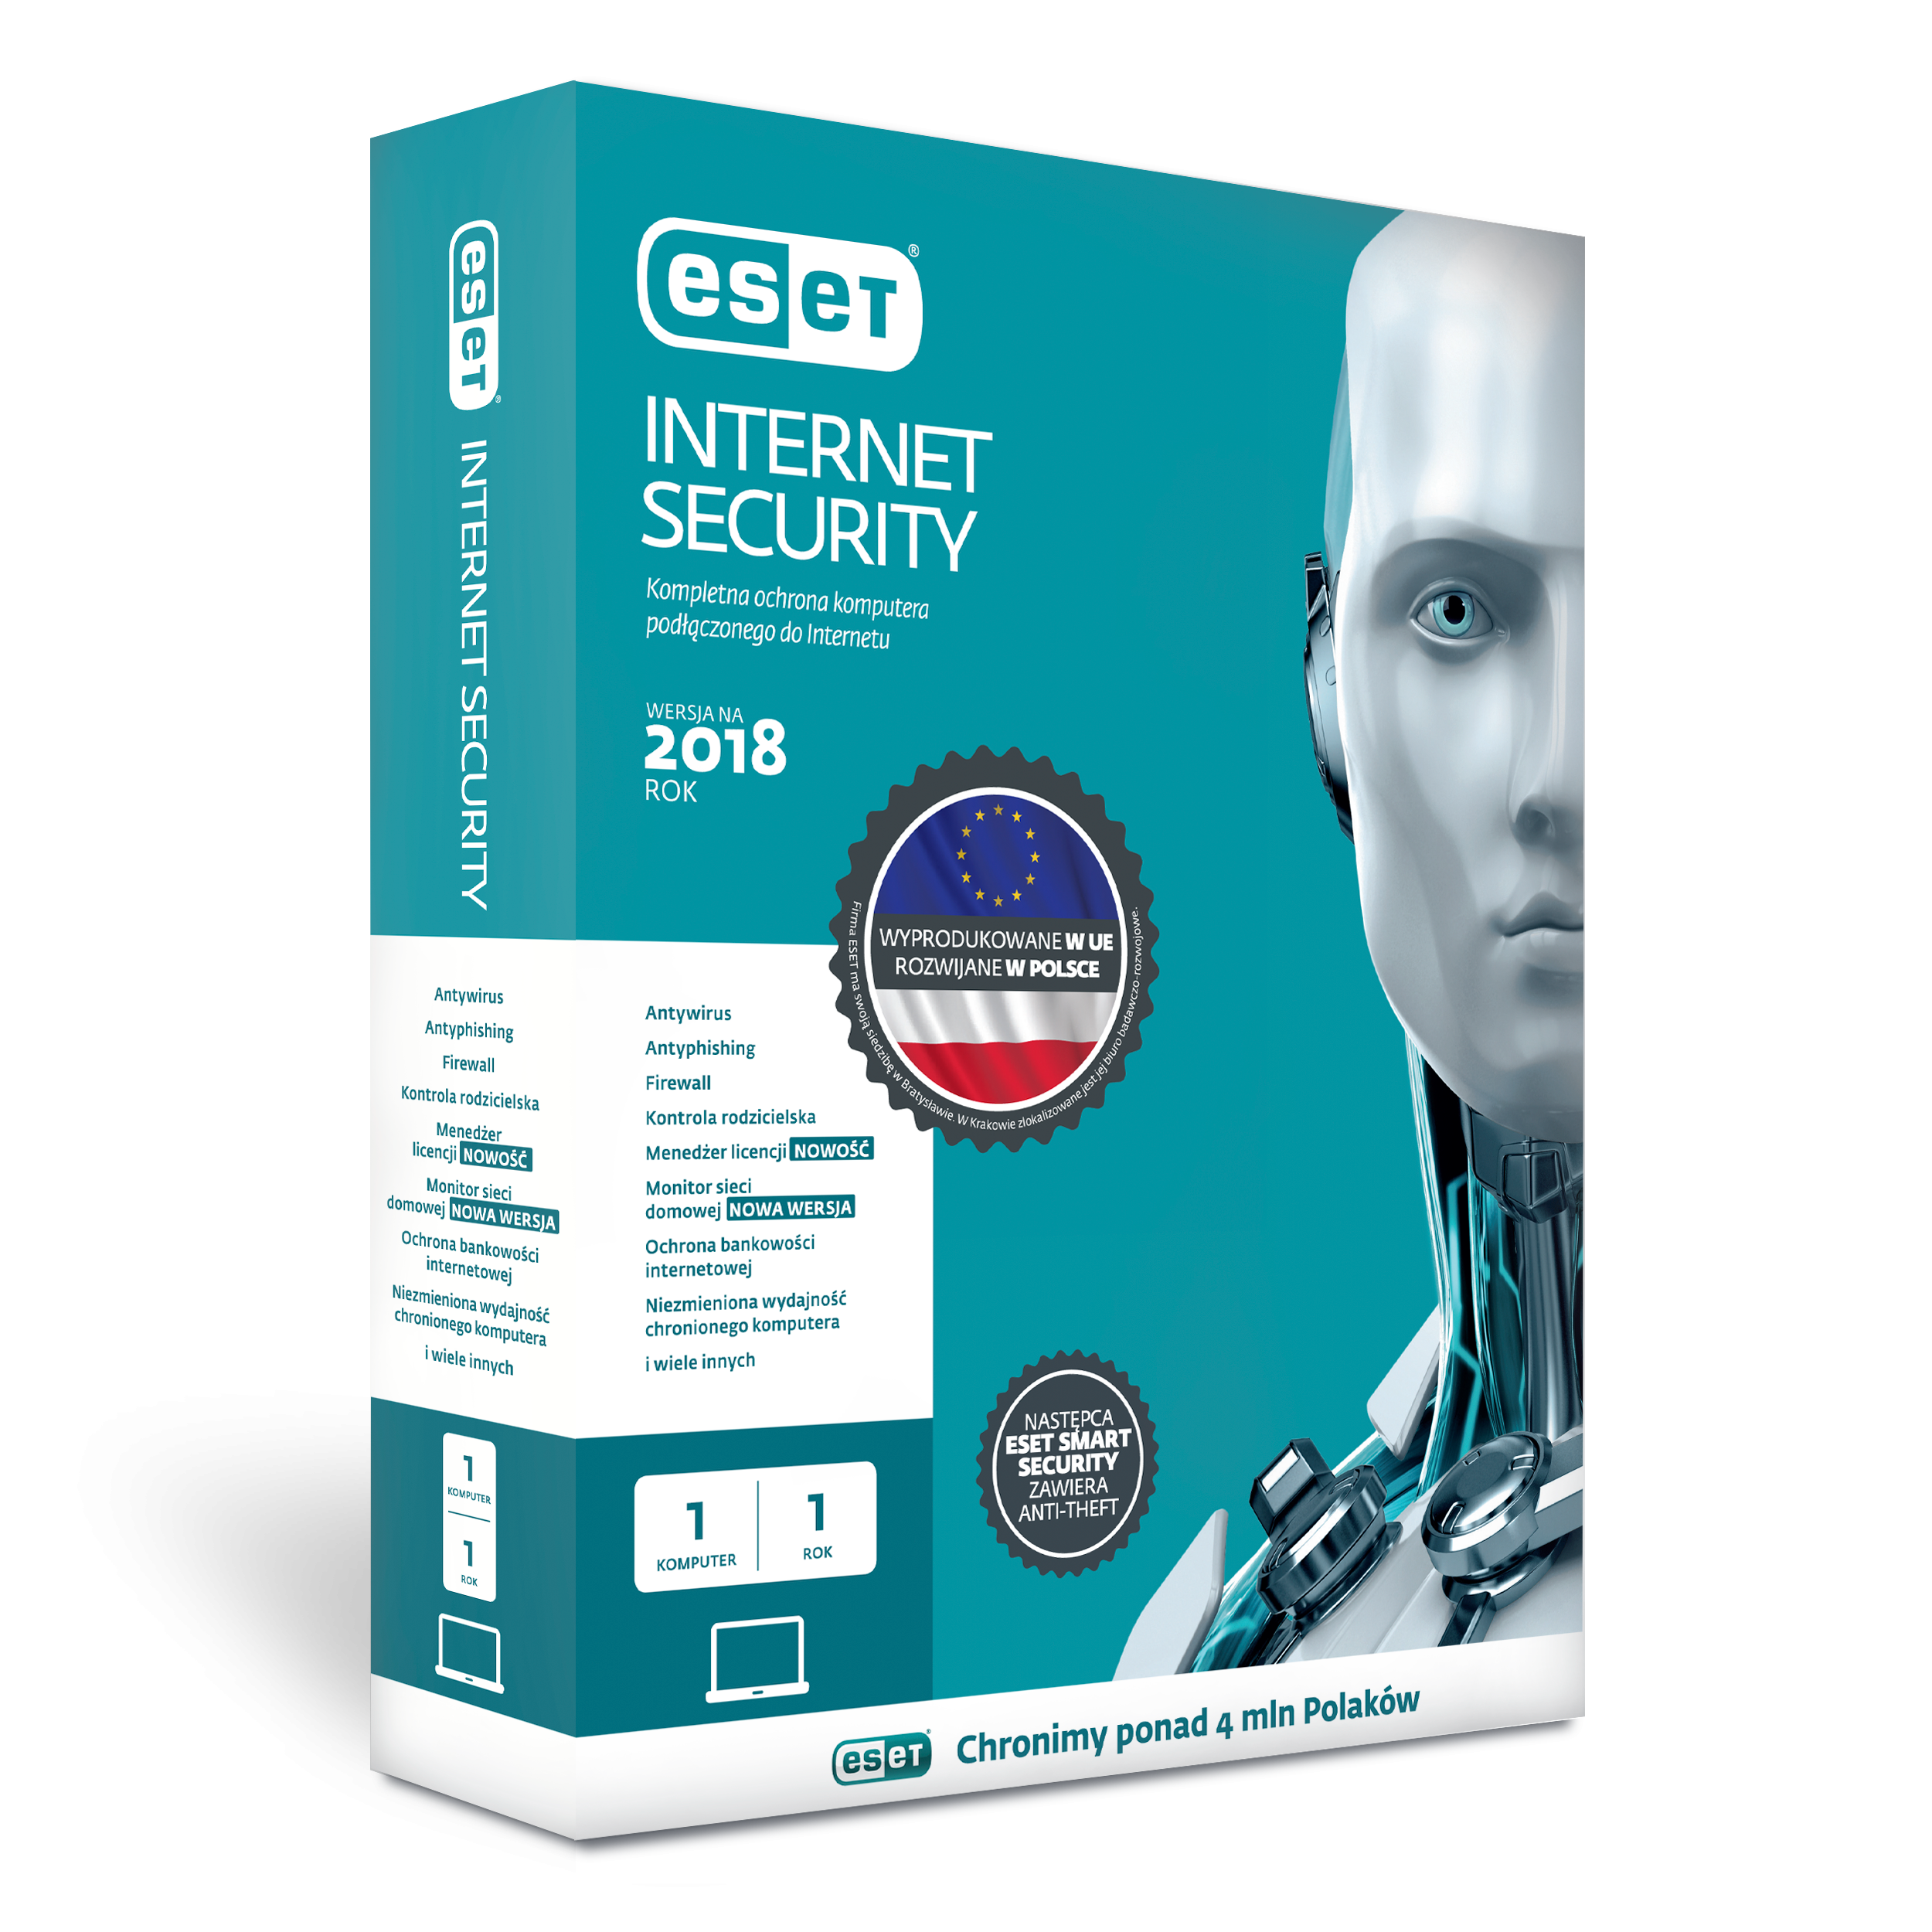 ESET Internet Security - imienna (2-4)